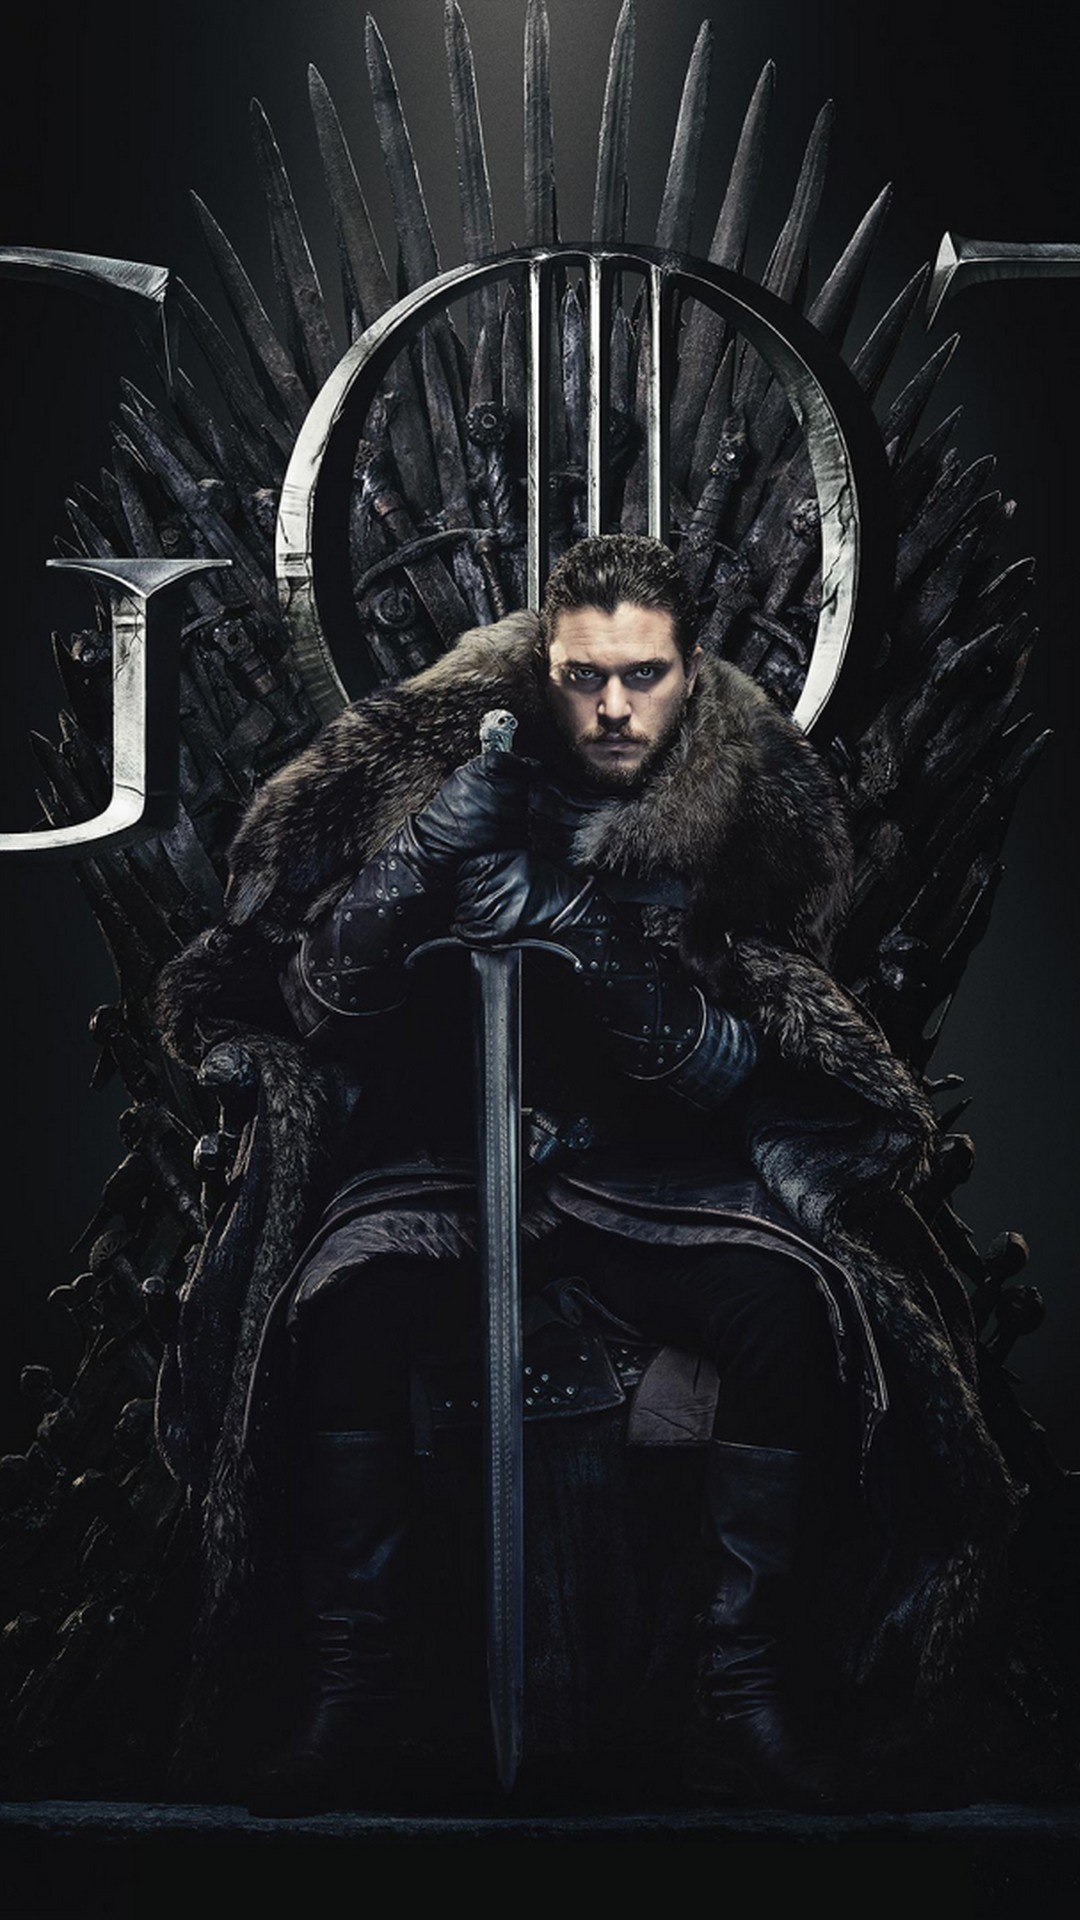 Game of Thrones 8 Season Poster 2019 Movie Poster Wallpaper HD 1080x1920